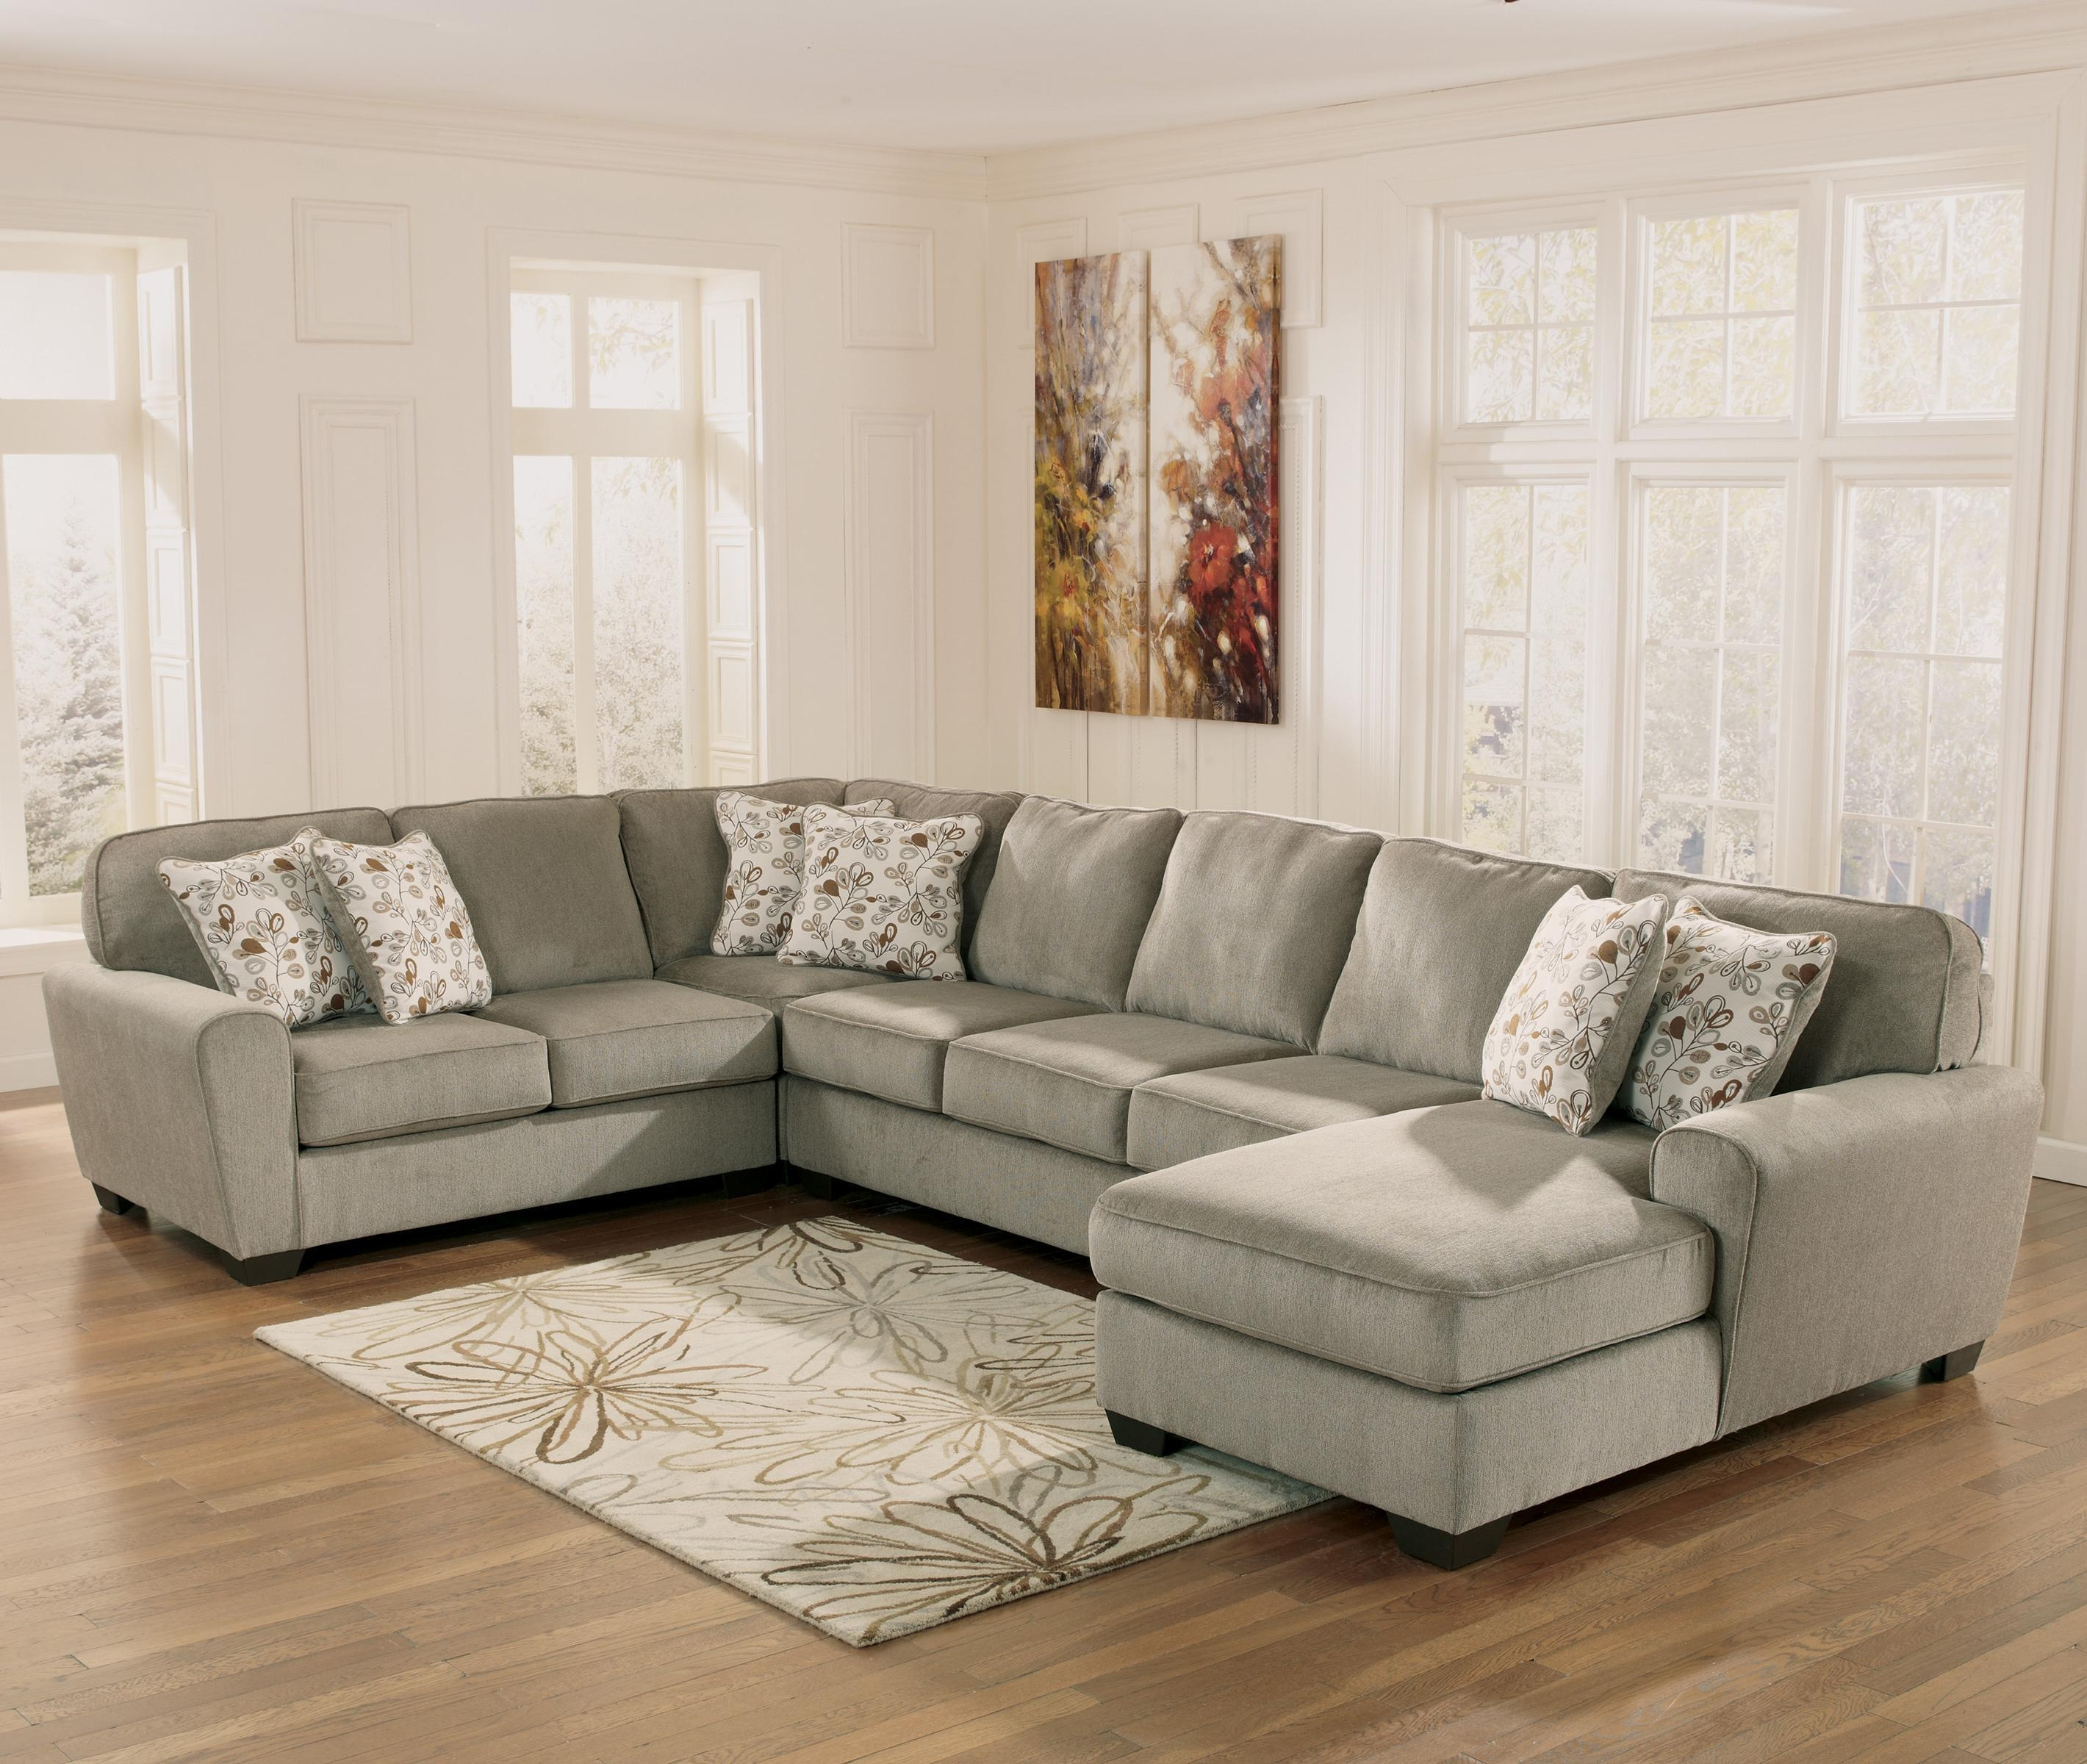 Ashleys Furnitures: 20 Best Ashley Furniture Corduroy Sectional Sofas